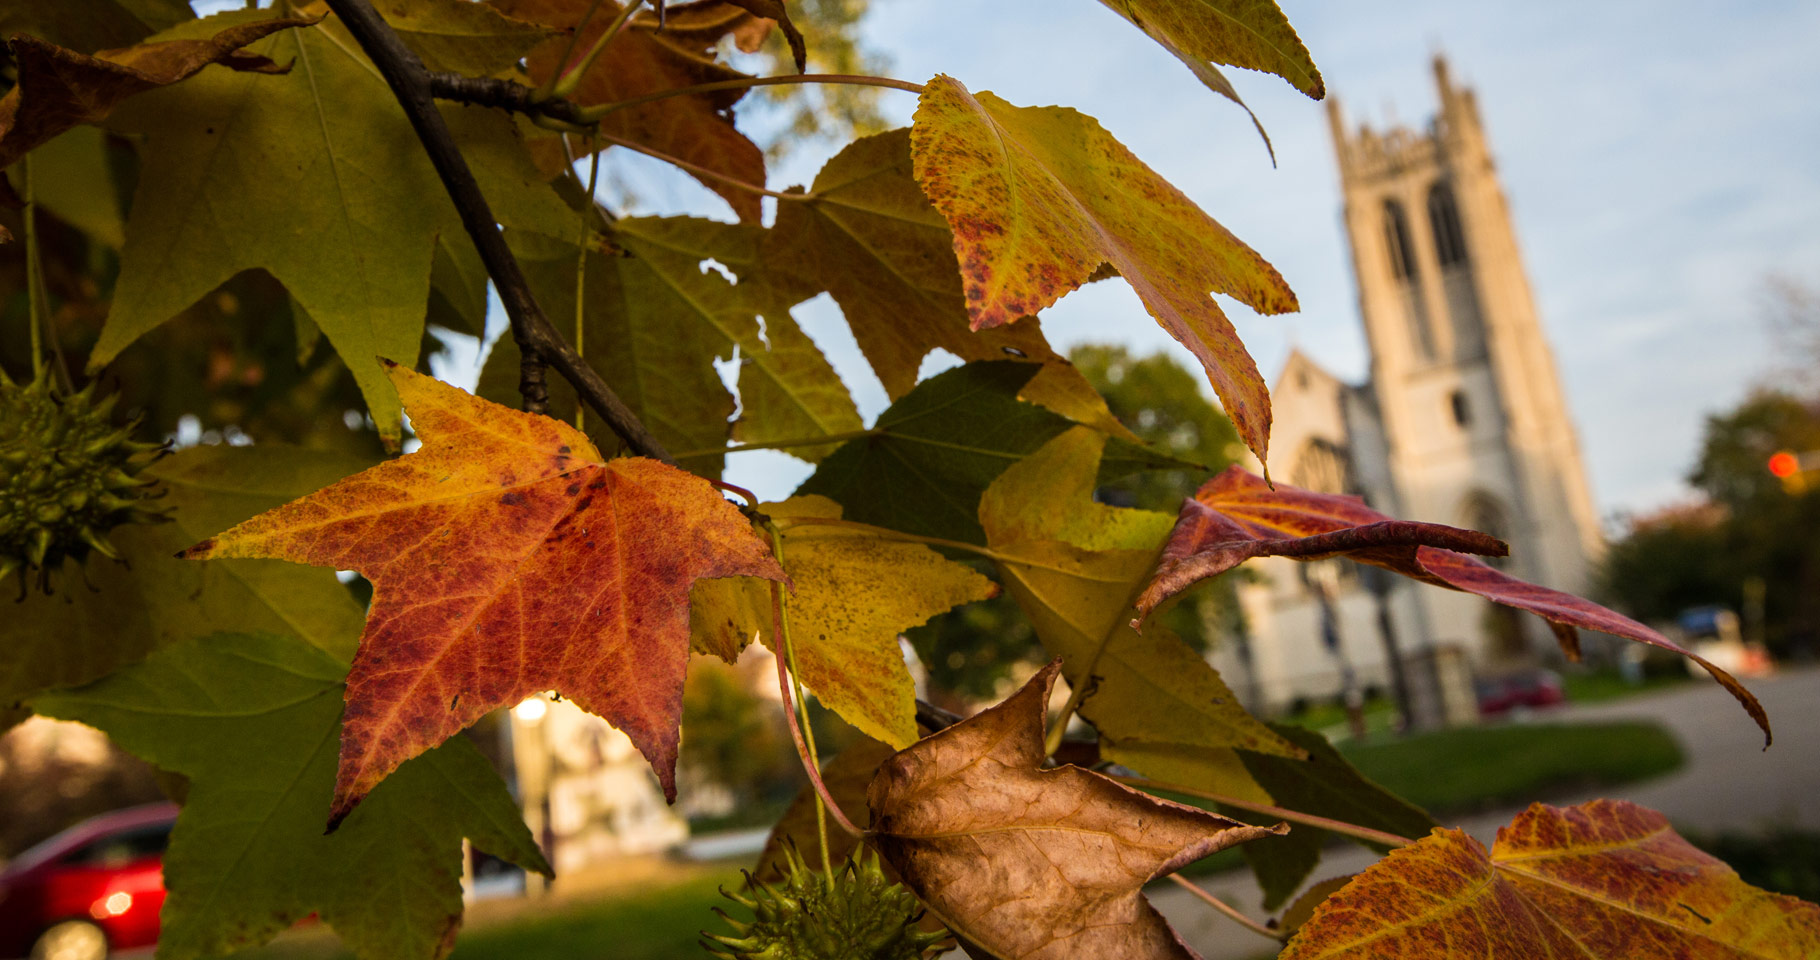 Photo of leaves in fall colors handing on a tree with Amasa Stone Chapel out of focus in the background